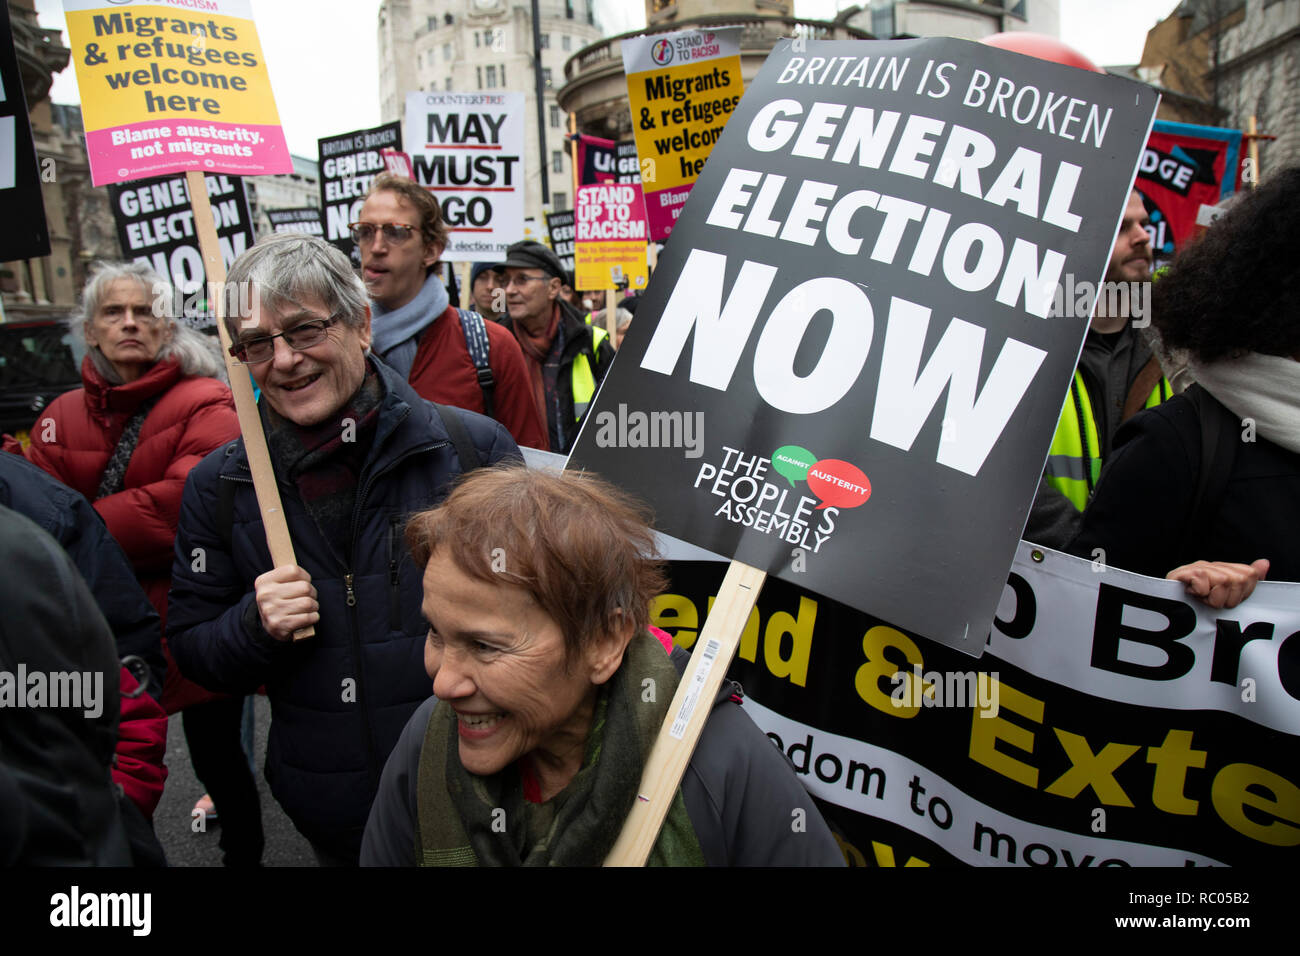 Britain is Broken - General Election Now demonstration against Tory cuts and austerity on 12th January 2019 in London, United Kingdom. Irrespective of which way people voted in the EU referendum, this protest was calling for an end to austerity and homelessness, the nationalisation of rail and other utilities, and ultimately, for a general election to end the Tories power. Theresa May must go placard. - Stock Image